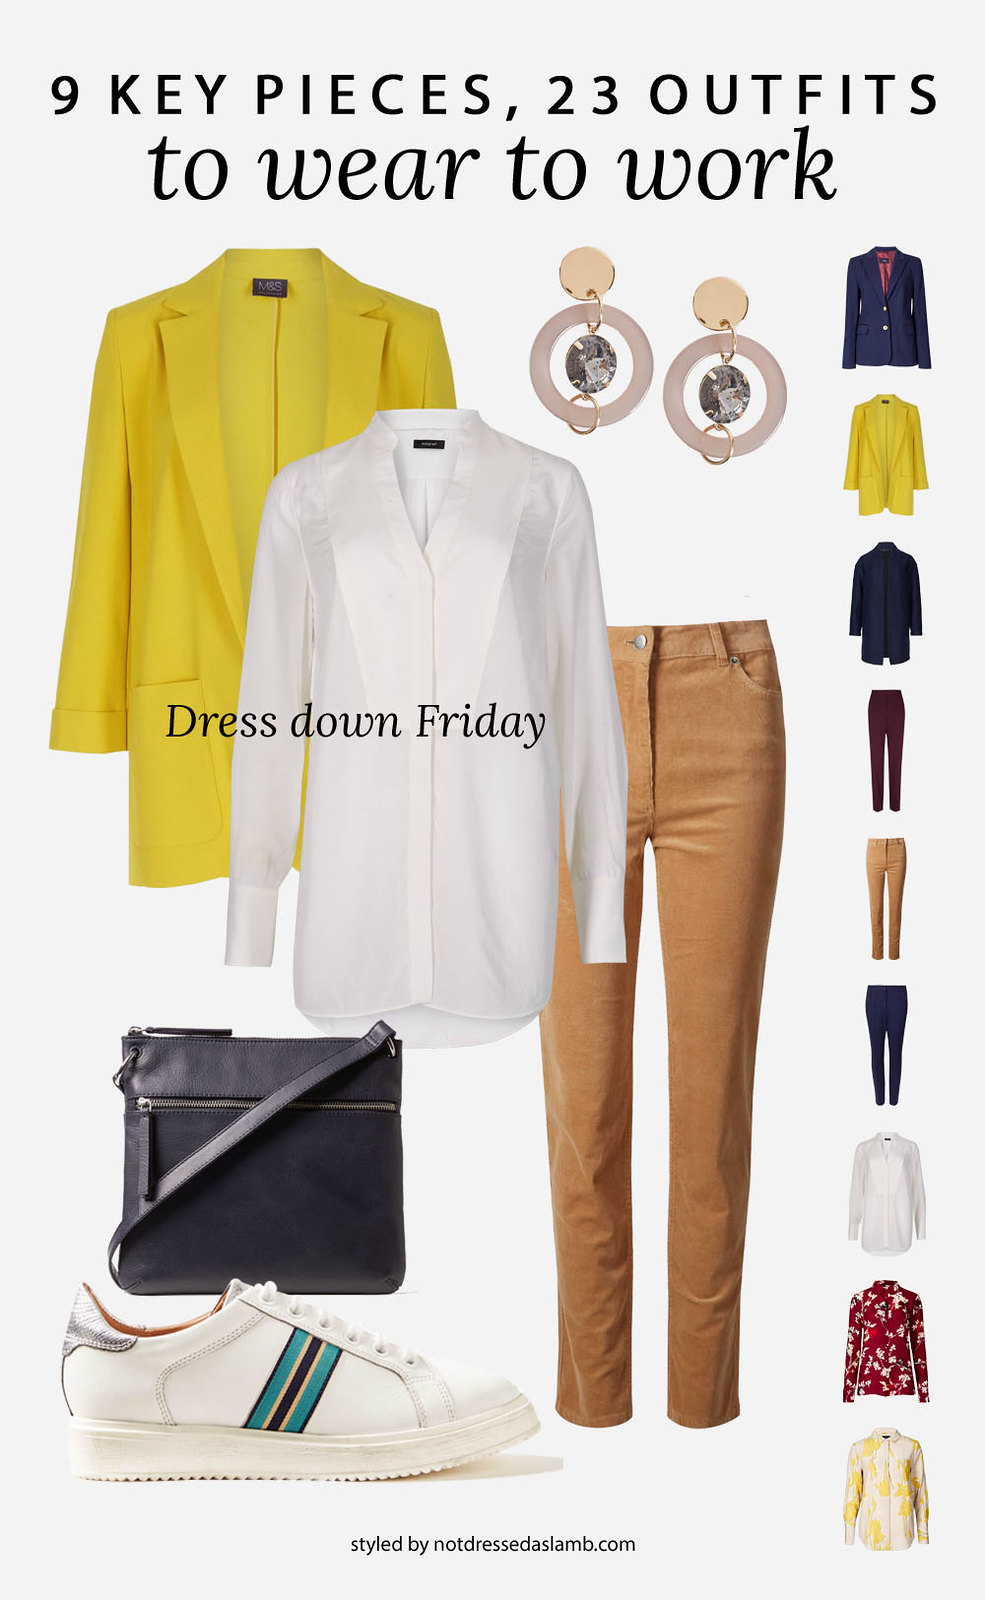 23 Workwear Outfits From 9 Key Pieces Perfect for a Creative Office: Dress down Friday | Not Dressed As Lamb, over 40 style